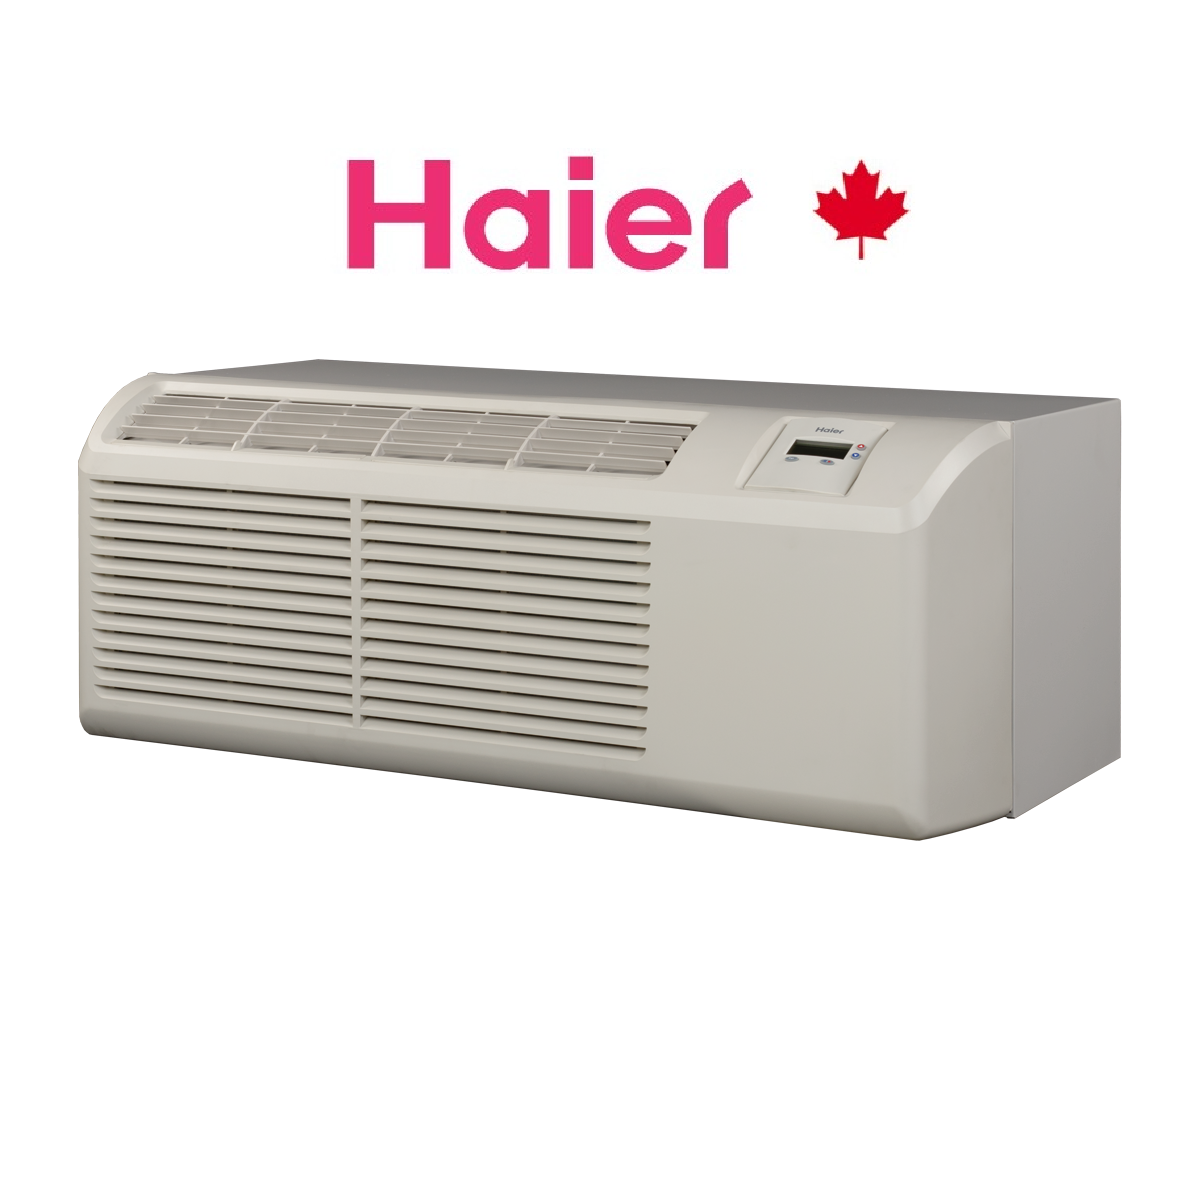 HAIER PTAC UNITS PTHH0901UAC heat pump COOLING AND HEATING #C80320